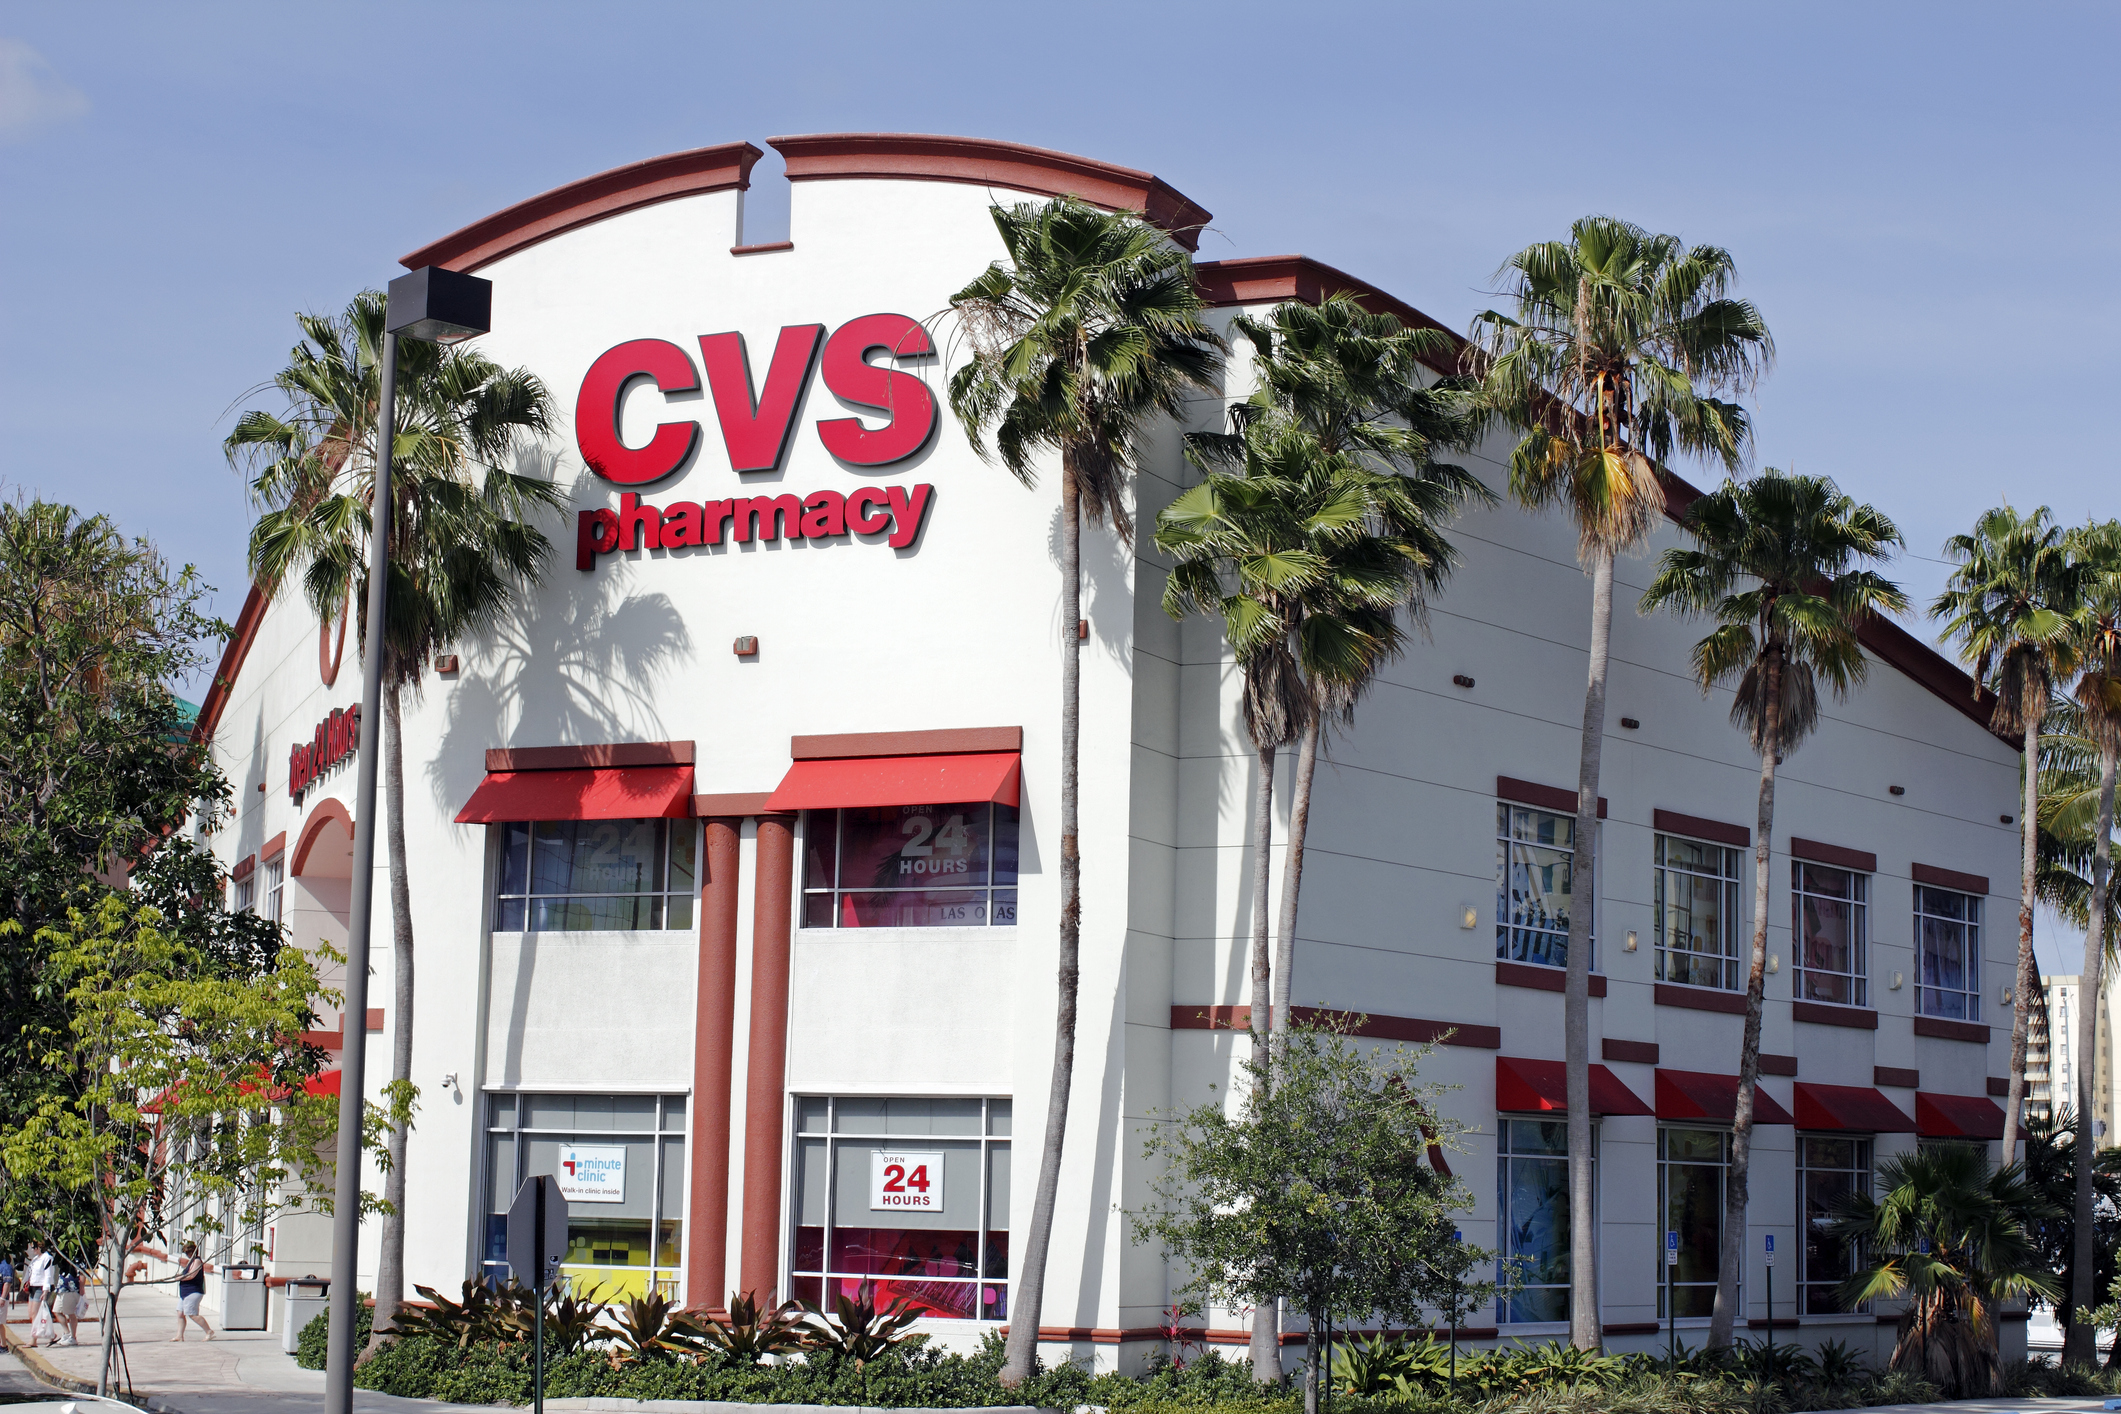 CVS Pharmacy Building with Signs